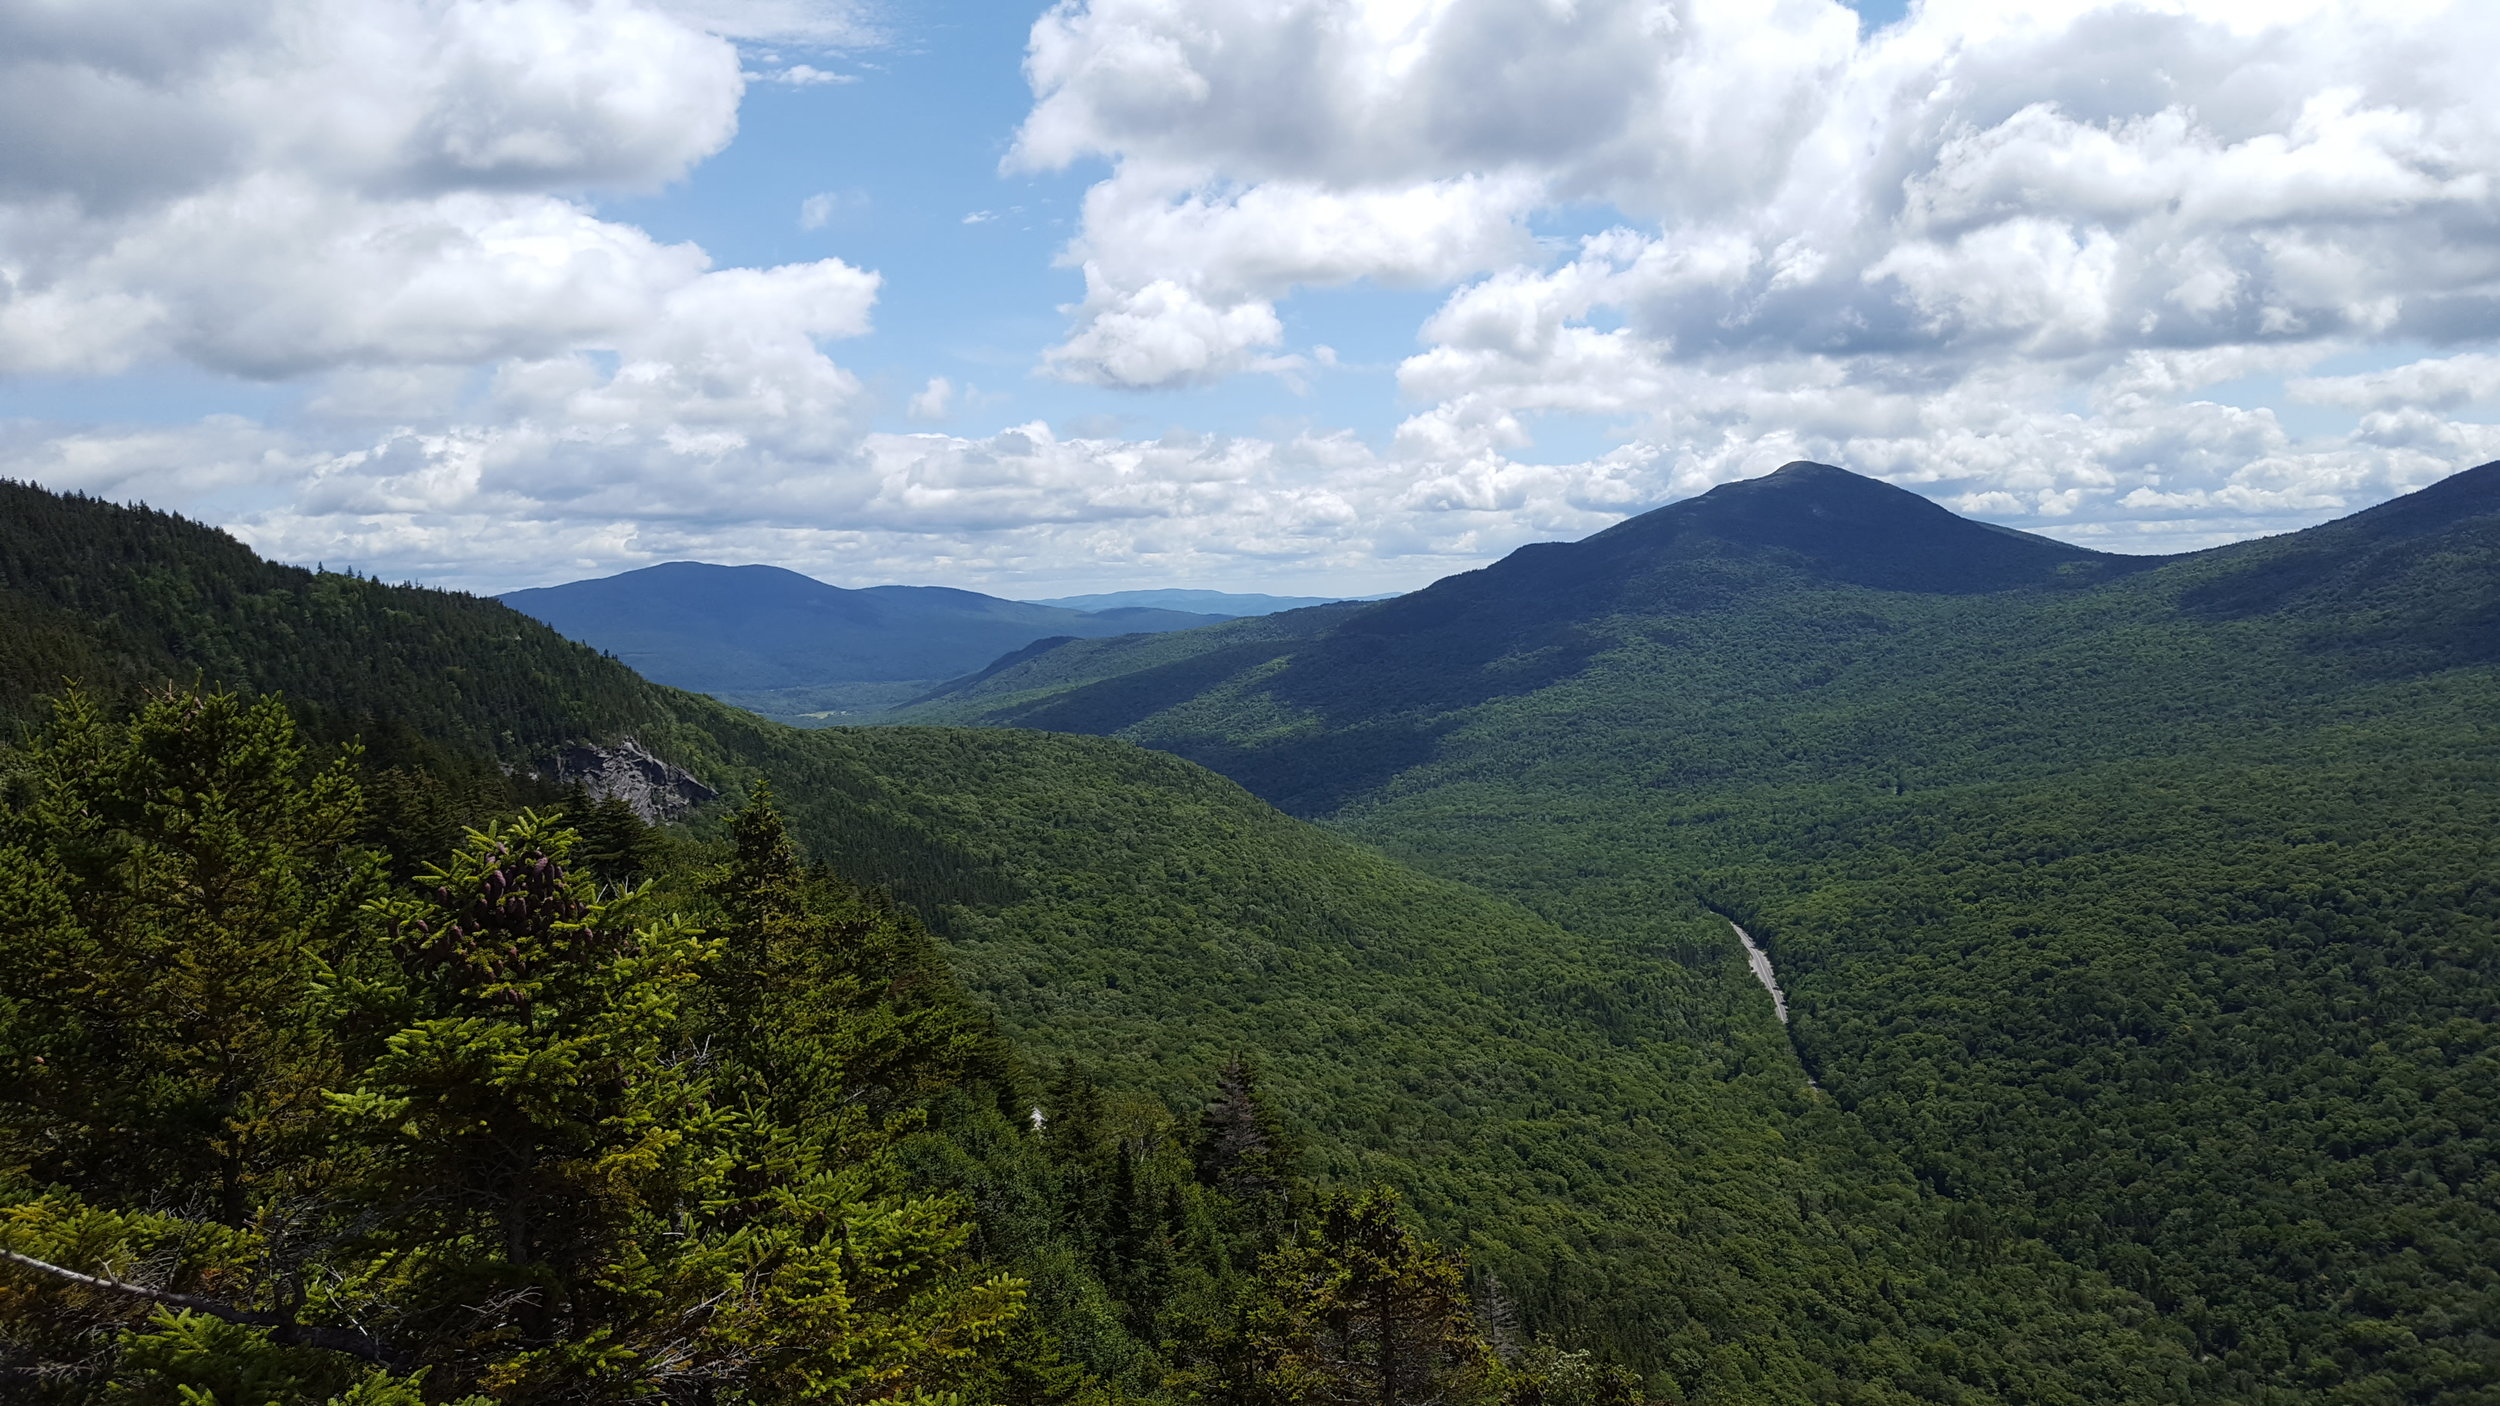 Looking out the notch past Sunday River Whitecap (right) and Puzzle Mountain (left, farther away)